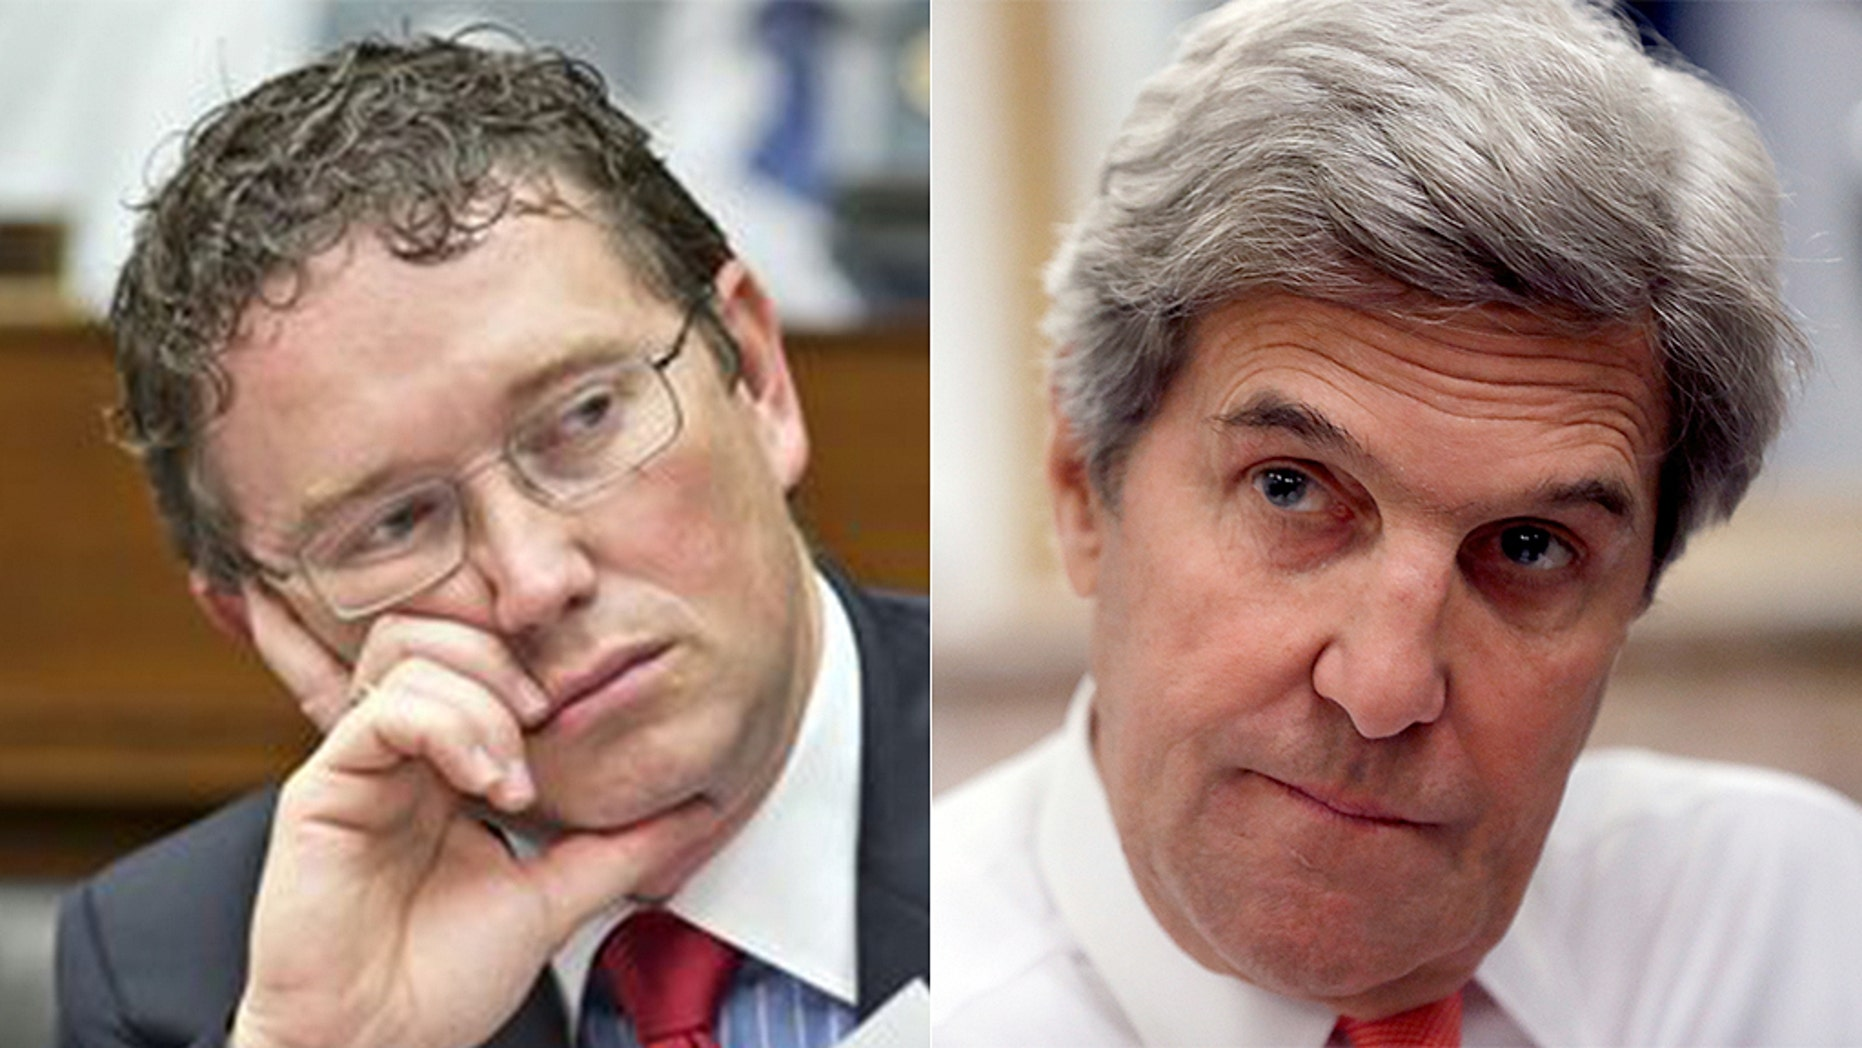 Former Secretary of State John Kerry clashed with Rep. Thomas Massie, R-Ky., on Tuesday.